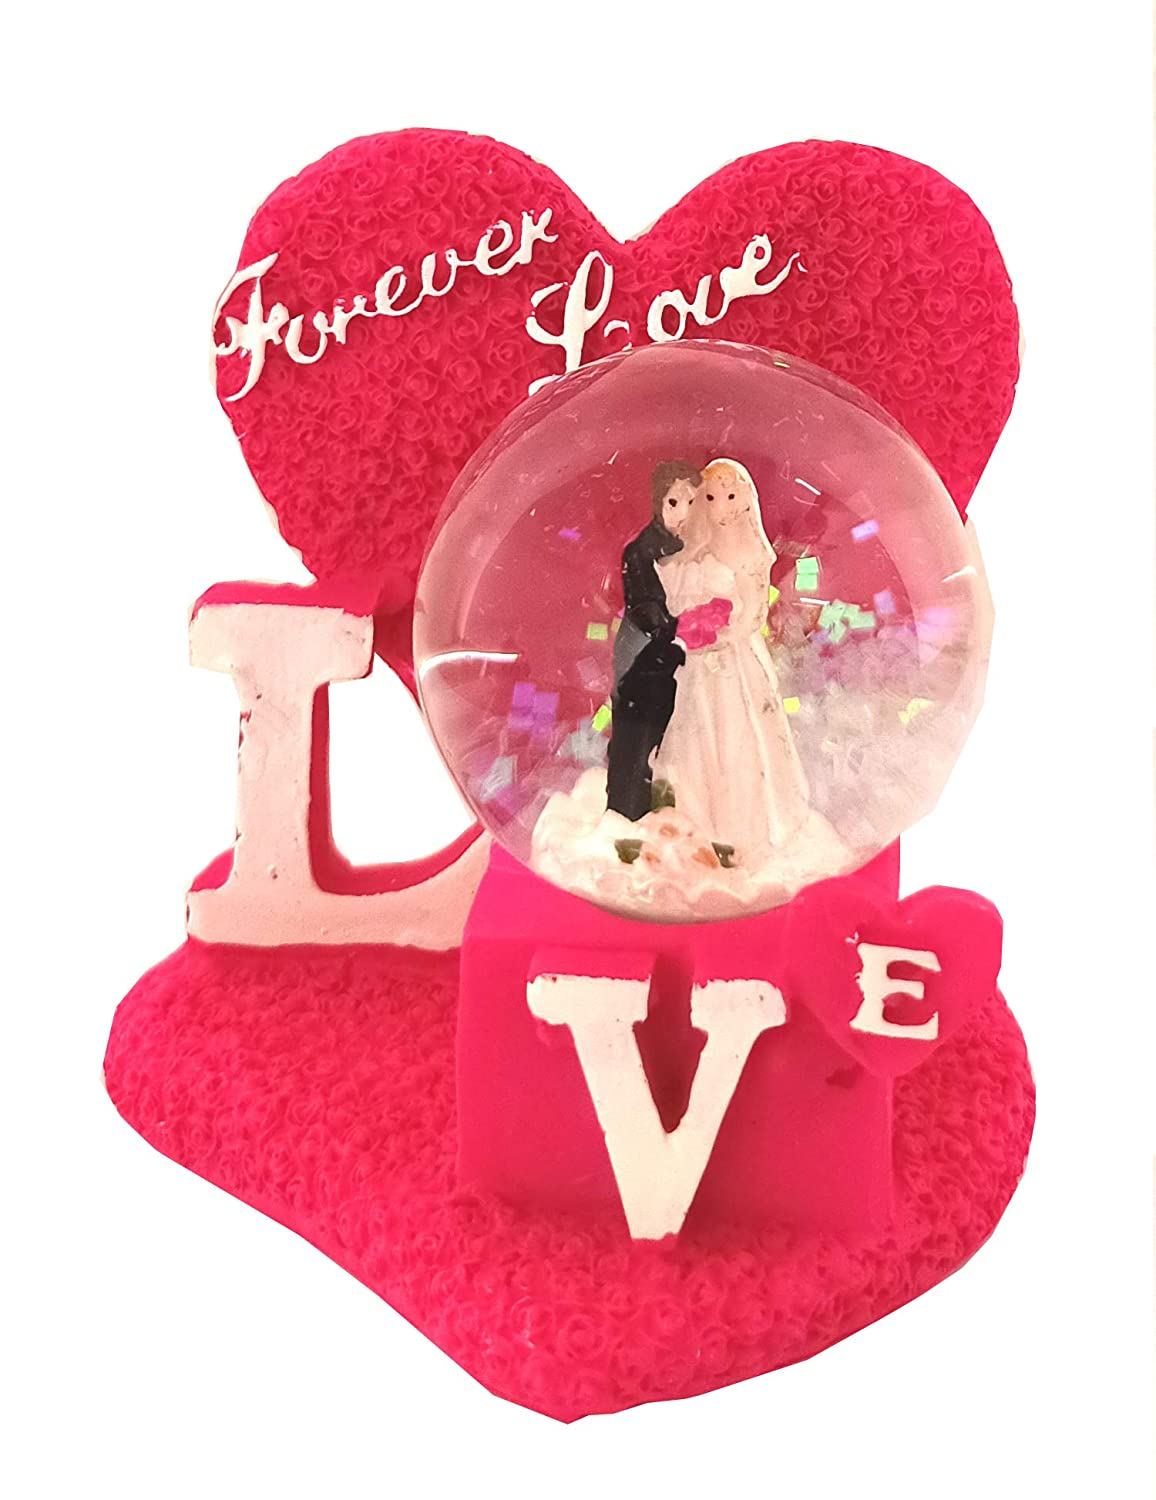 Buy Mm Cute Romantic Valentine Love Couple Statue Showpiece With Heart For Boy Friend Girl Friend Valentine S Day Gift Colour Changing Light Online At Low Prices In India Amazon In